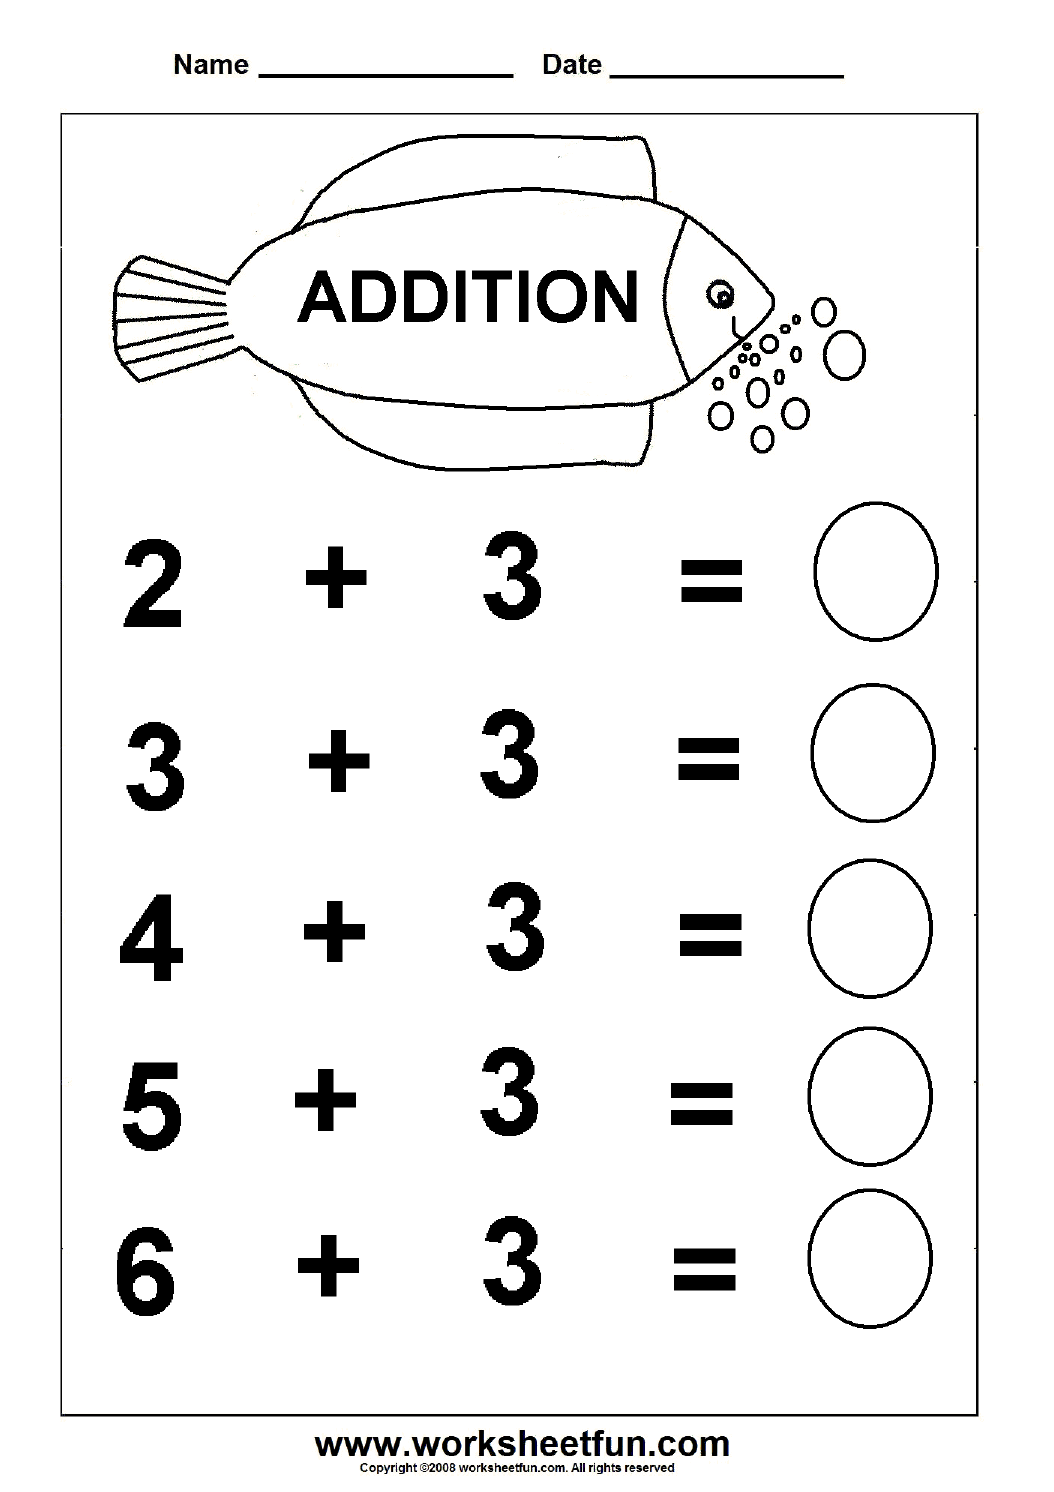 Beginner Addition 6 Kindergarten Addition Worksheets FREE – Kindergarten Addition Worksheets with Pictures